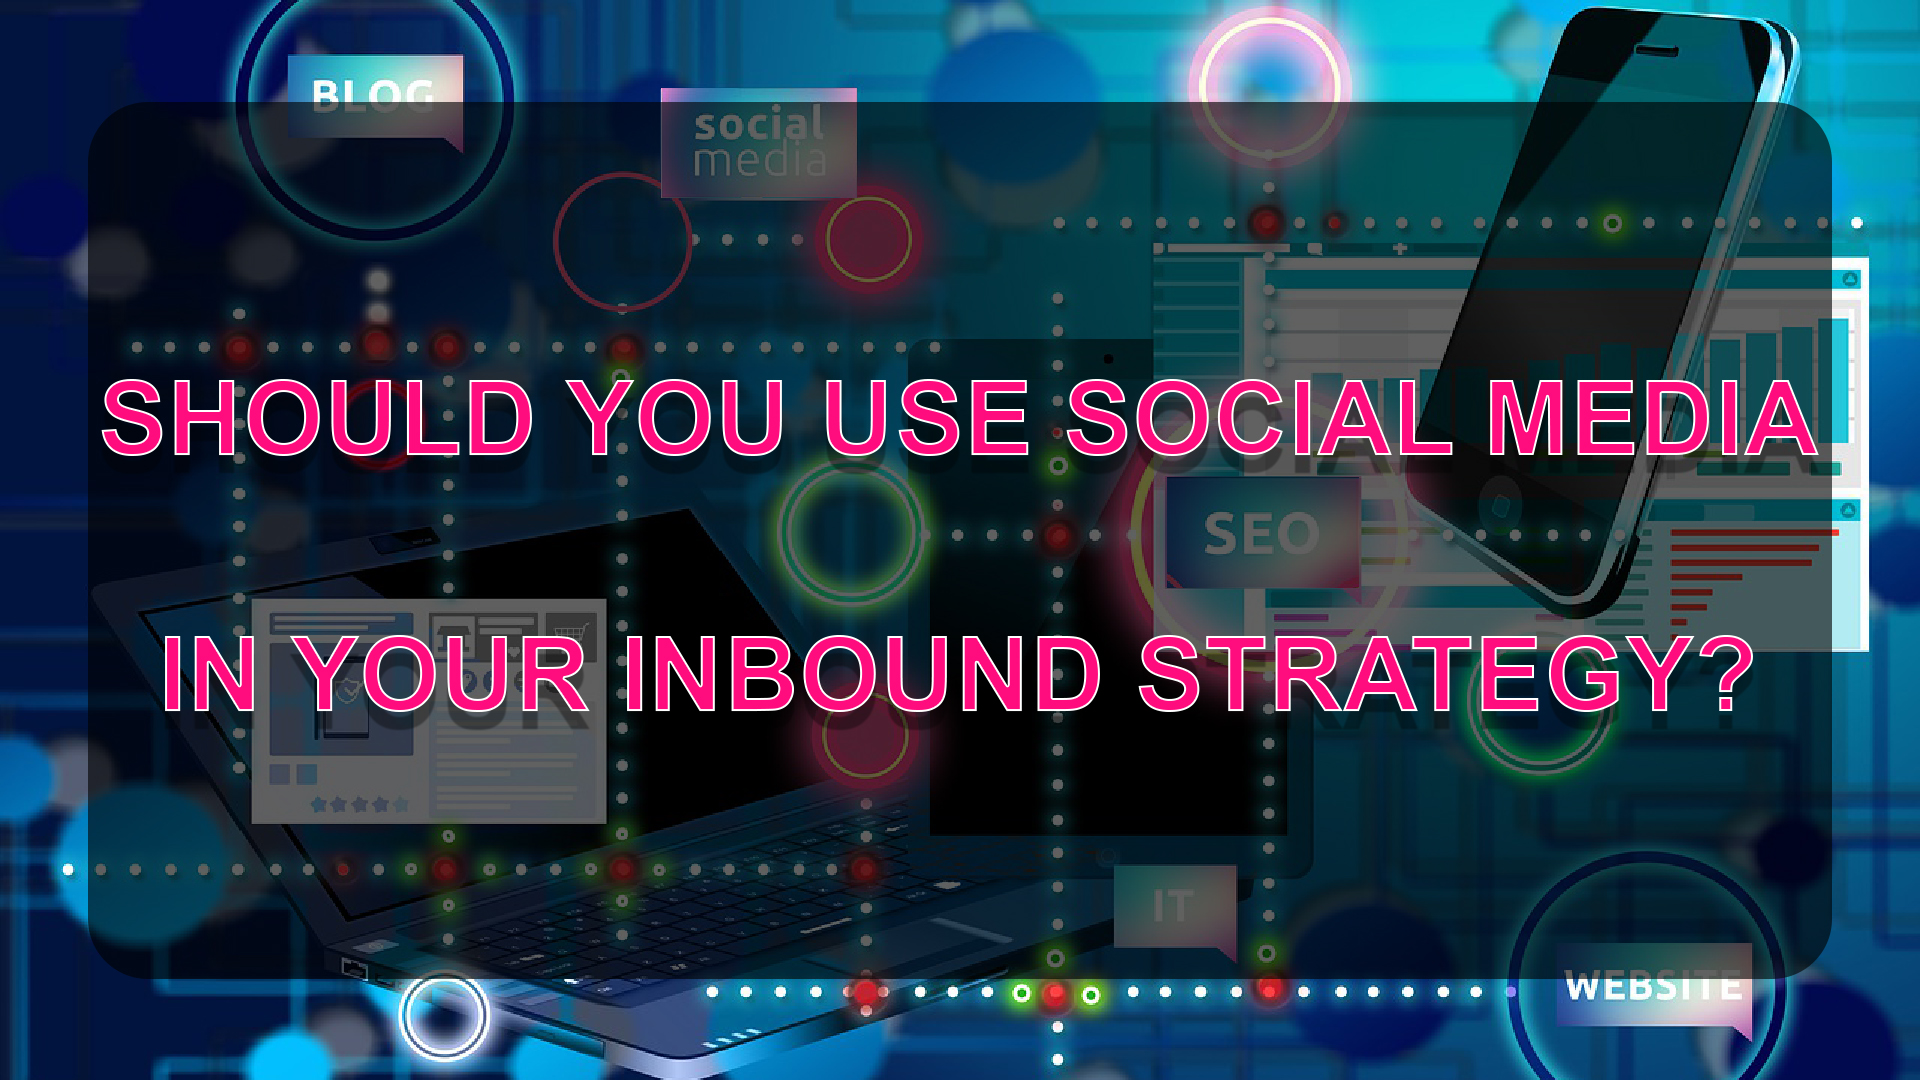 SHOULD-YOU-USE-SOCIAL-MEDIA-IN-YOUR-INBOUND-STRATEGY